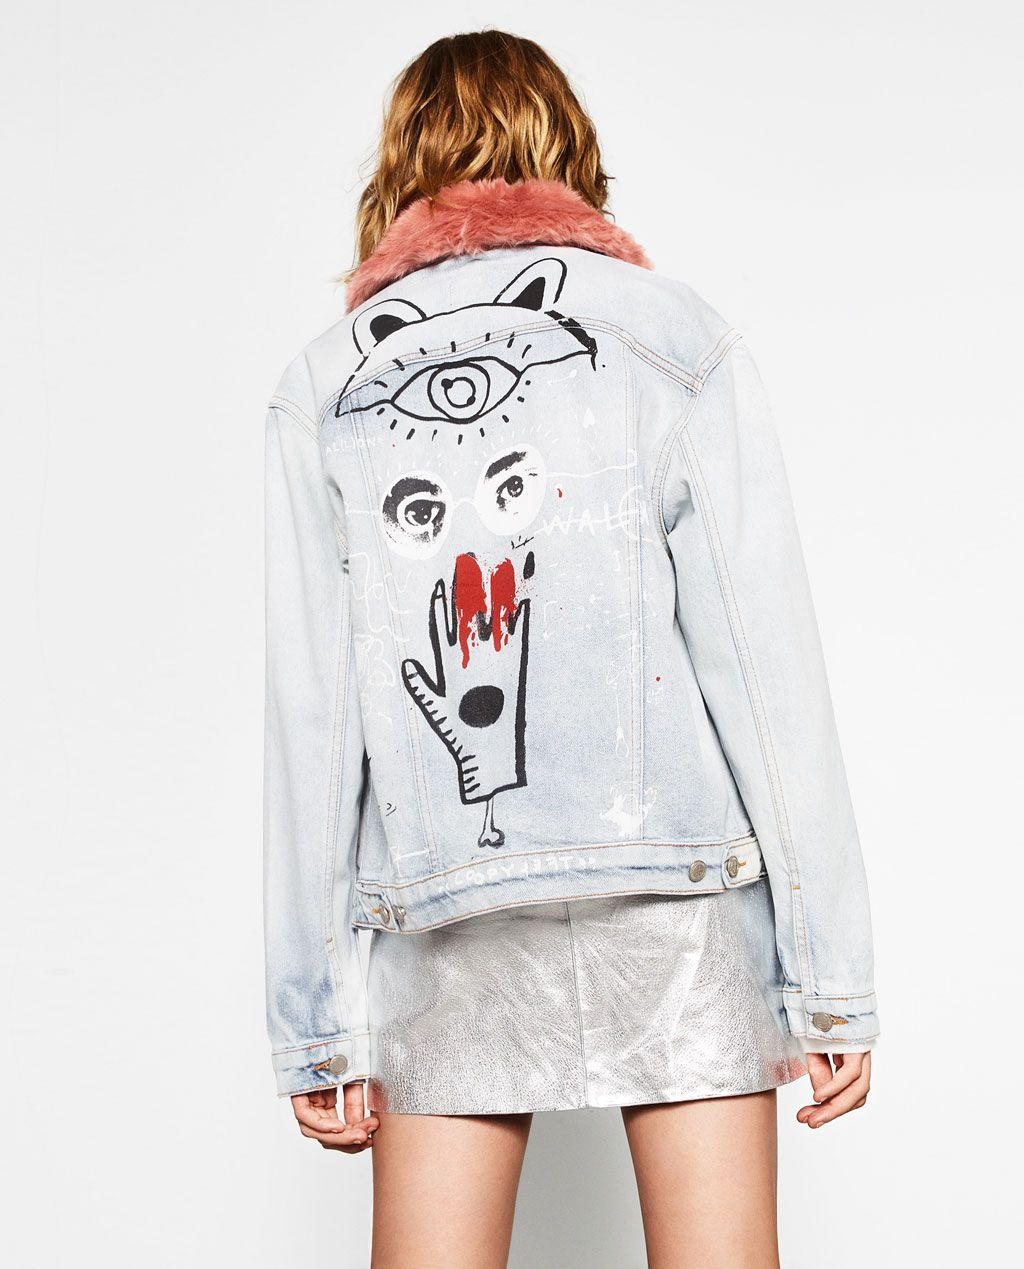 9b32d4d9fb DENIM JACKET WITH GRAFFITI-Jackets-OUTERWEAR-WOMAN | ZARA United States